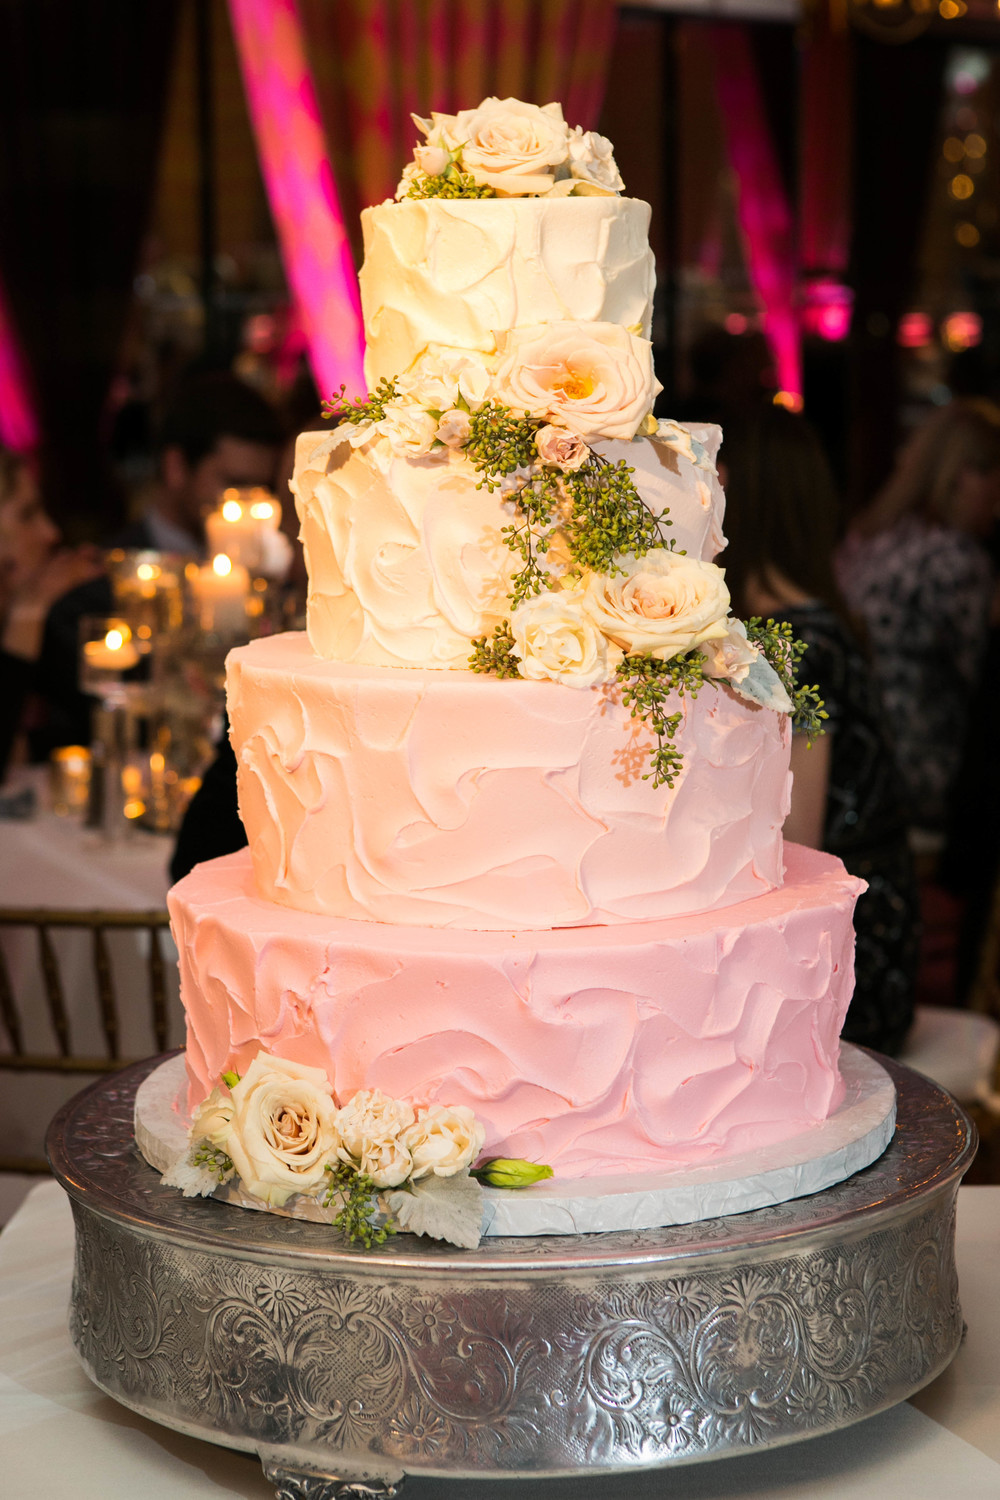 Bakery Wedding Cakes  Sugar Bee Sweets Bakery • Dallas Fort Worth Wedding Cake